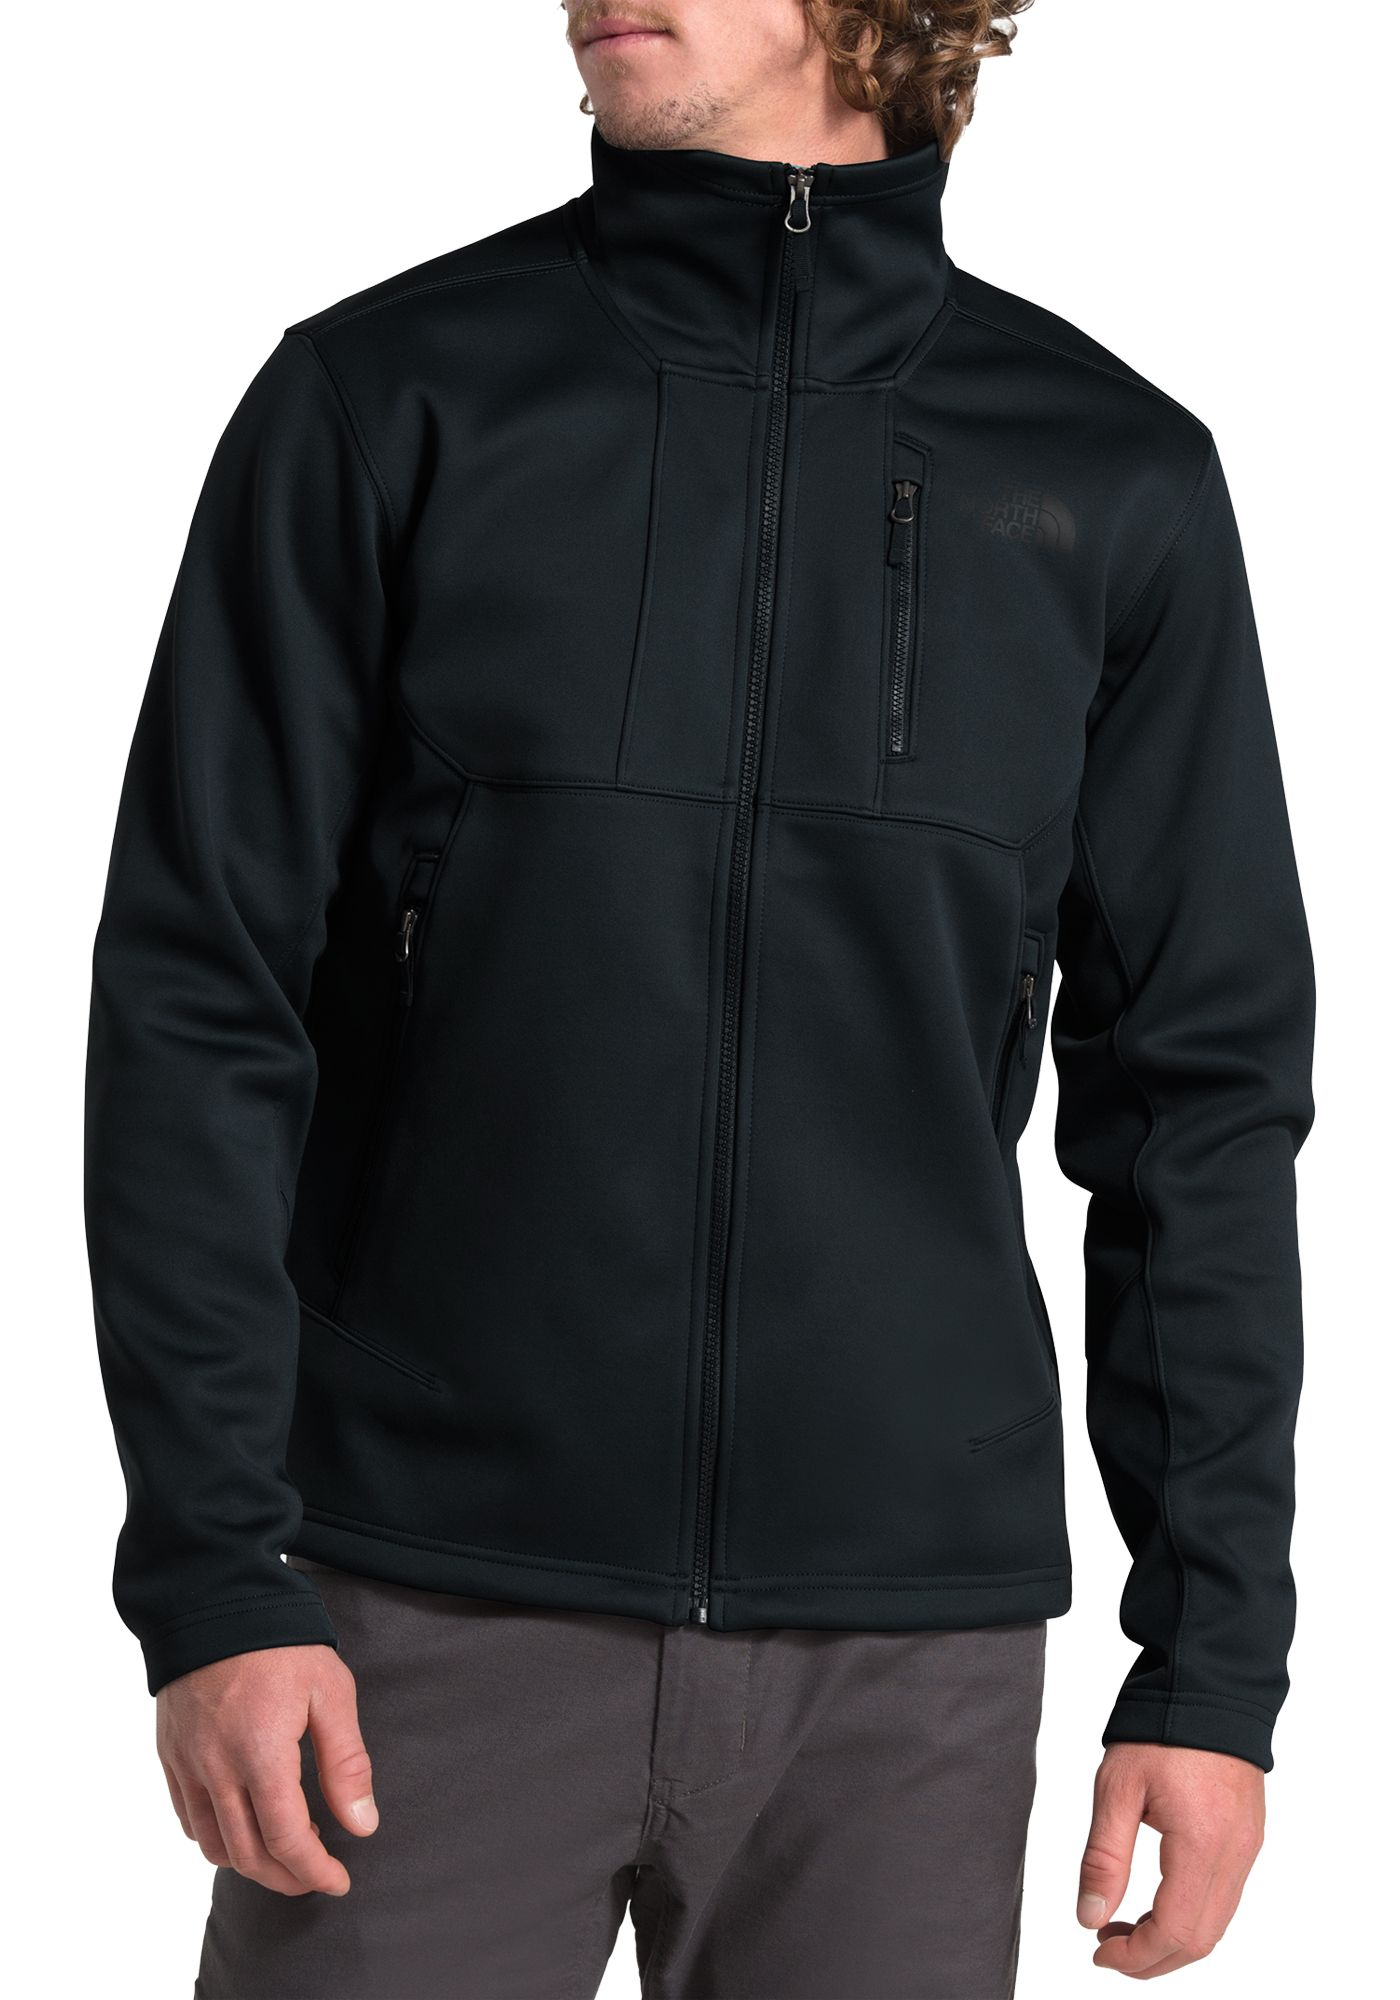 The North Face Men's Apex Risor Soft Shell Jacket (Regular and Big & Tall)